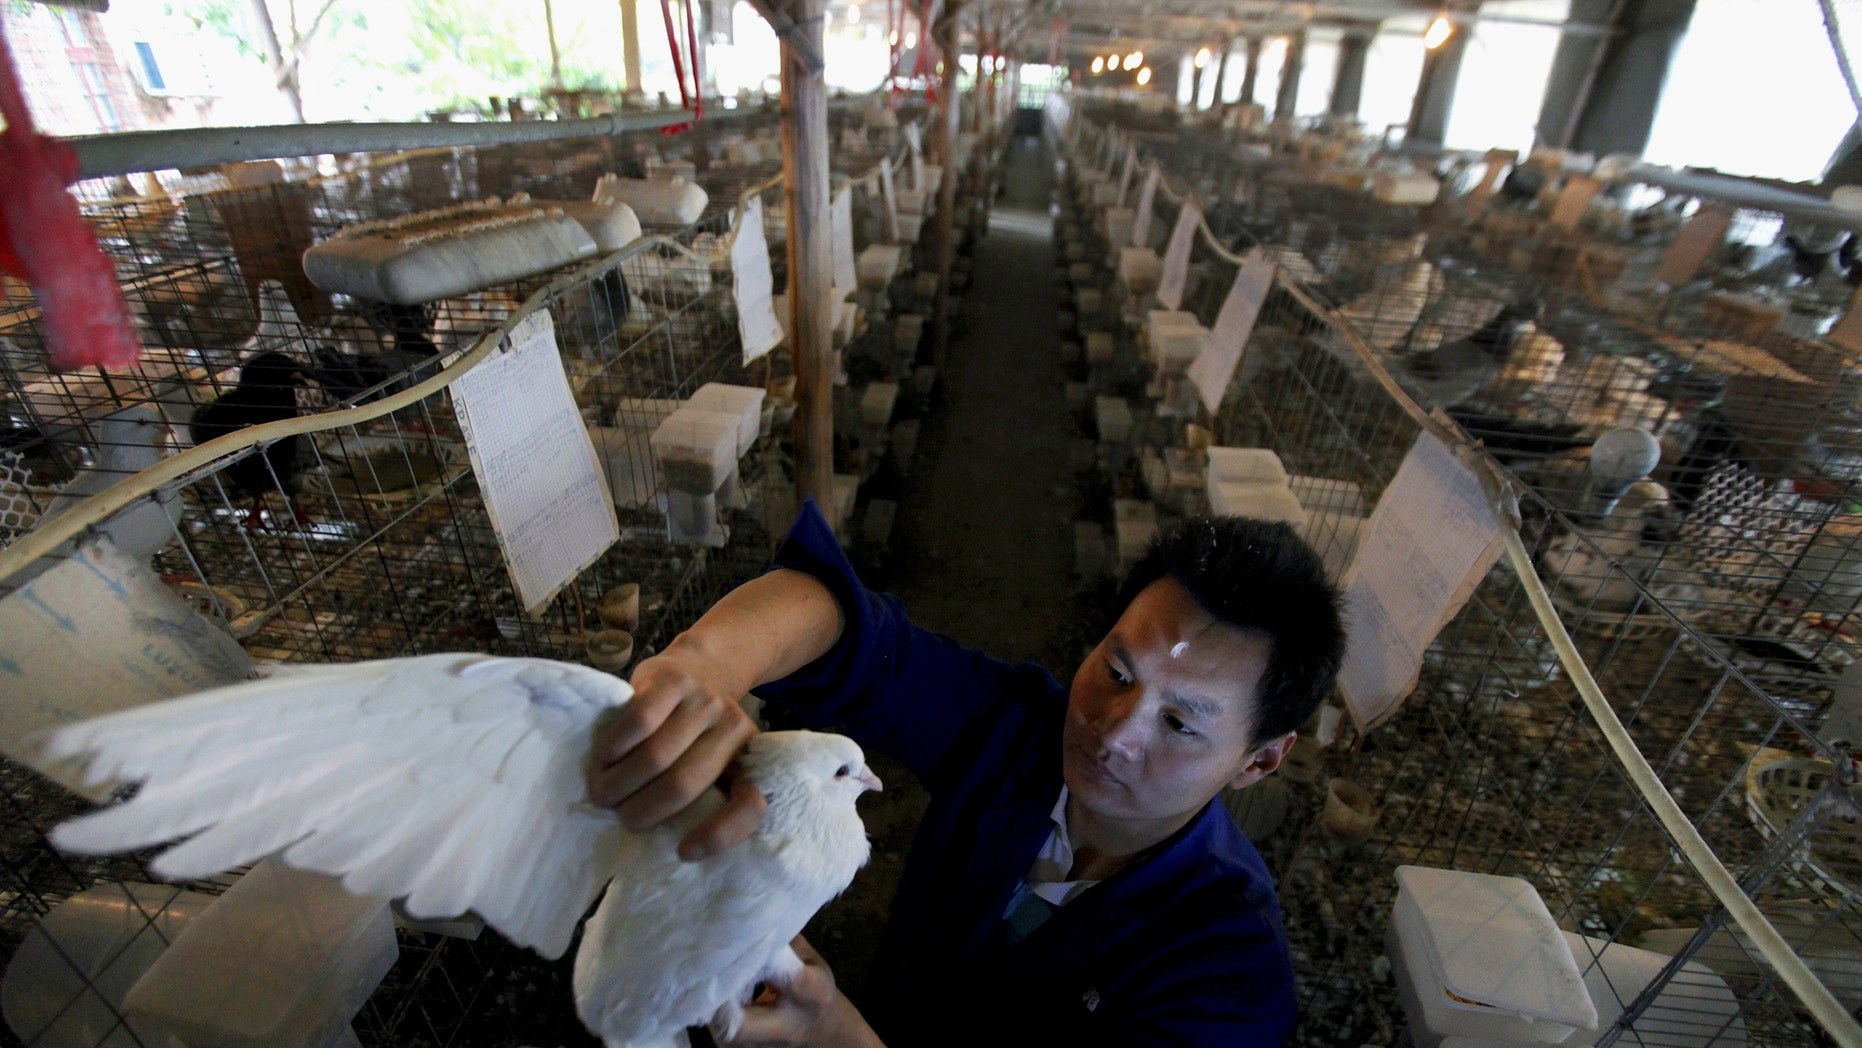 A man holds a pigeon at a pigeon farm, which according to the owner has not been affected by the H7N9 bird flu strain, in Quzhou, Zhejiang province. (REUTERS/Stringer)